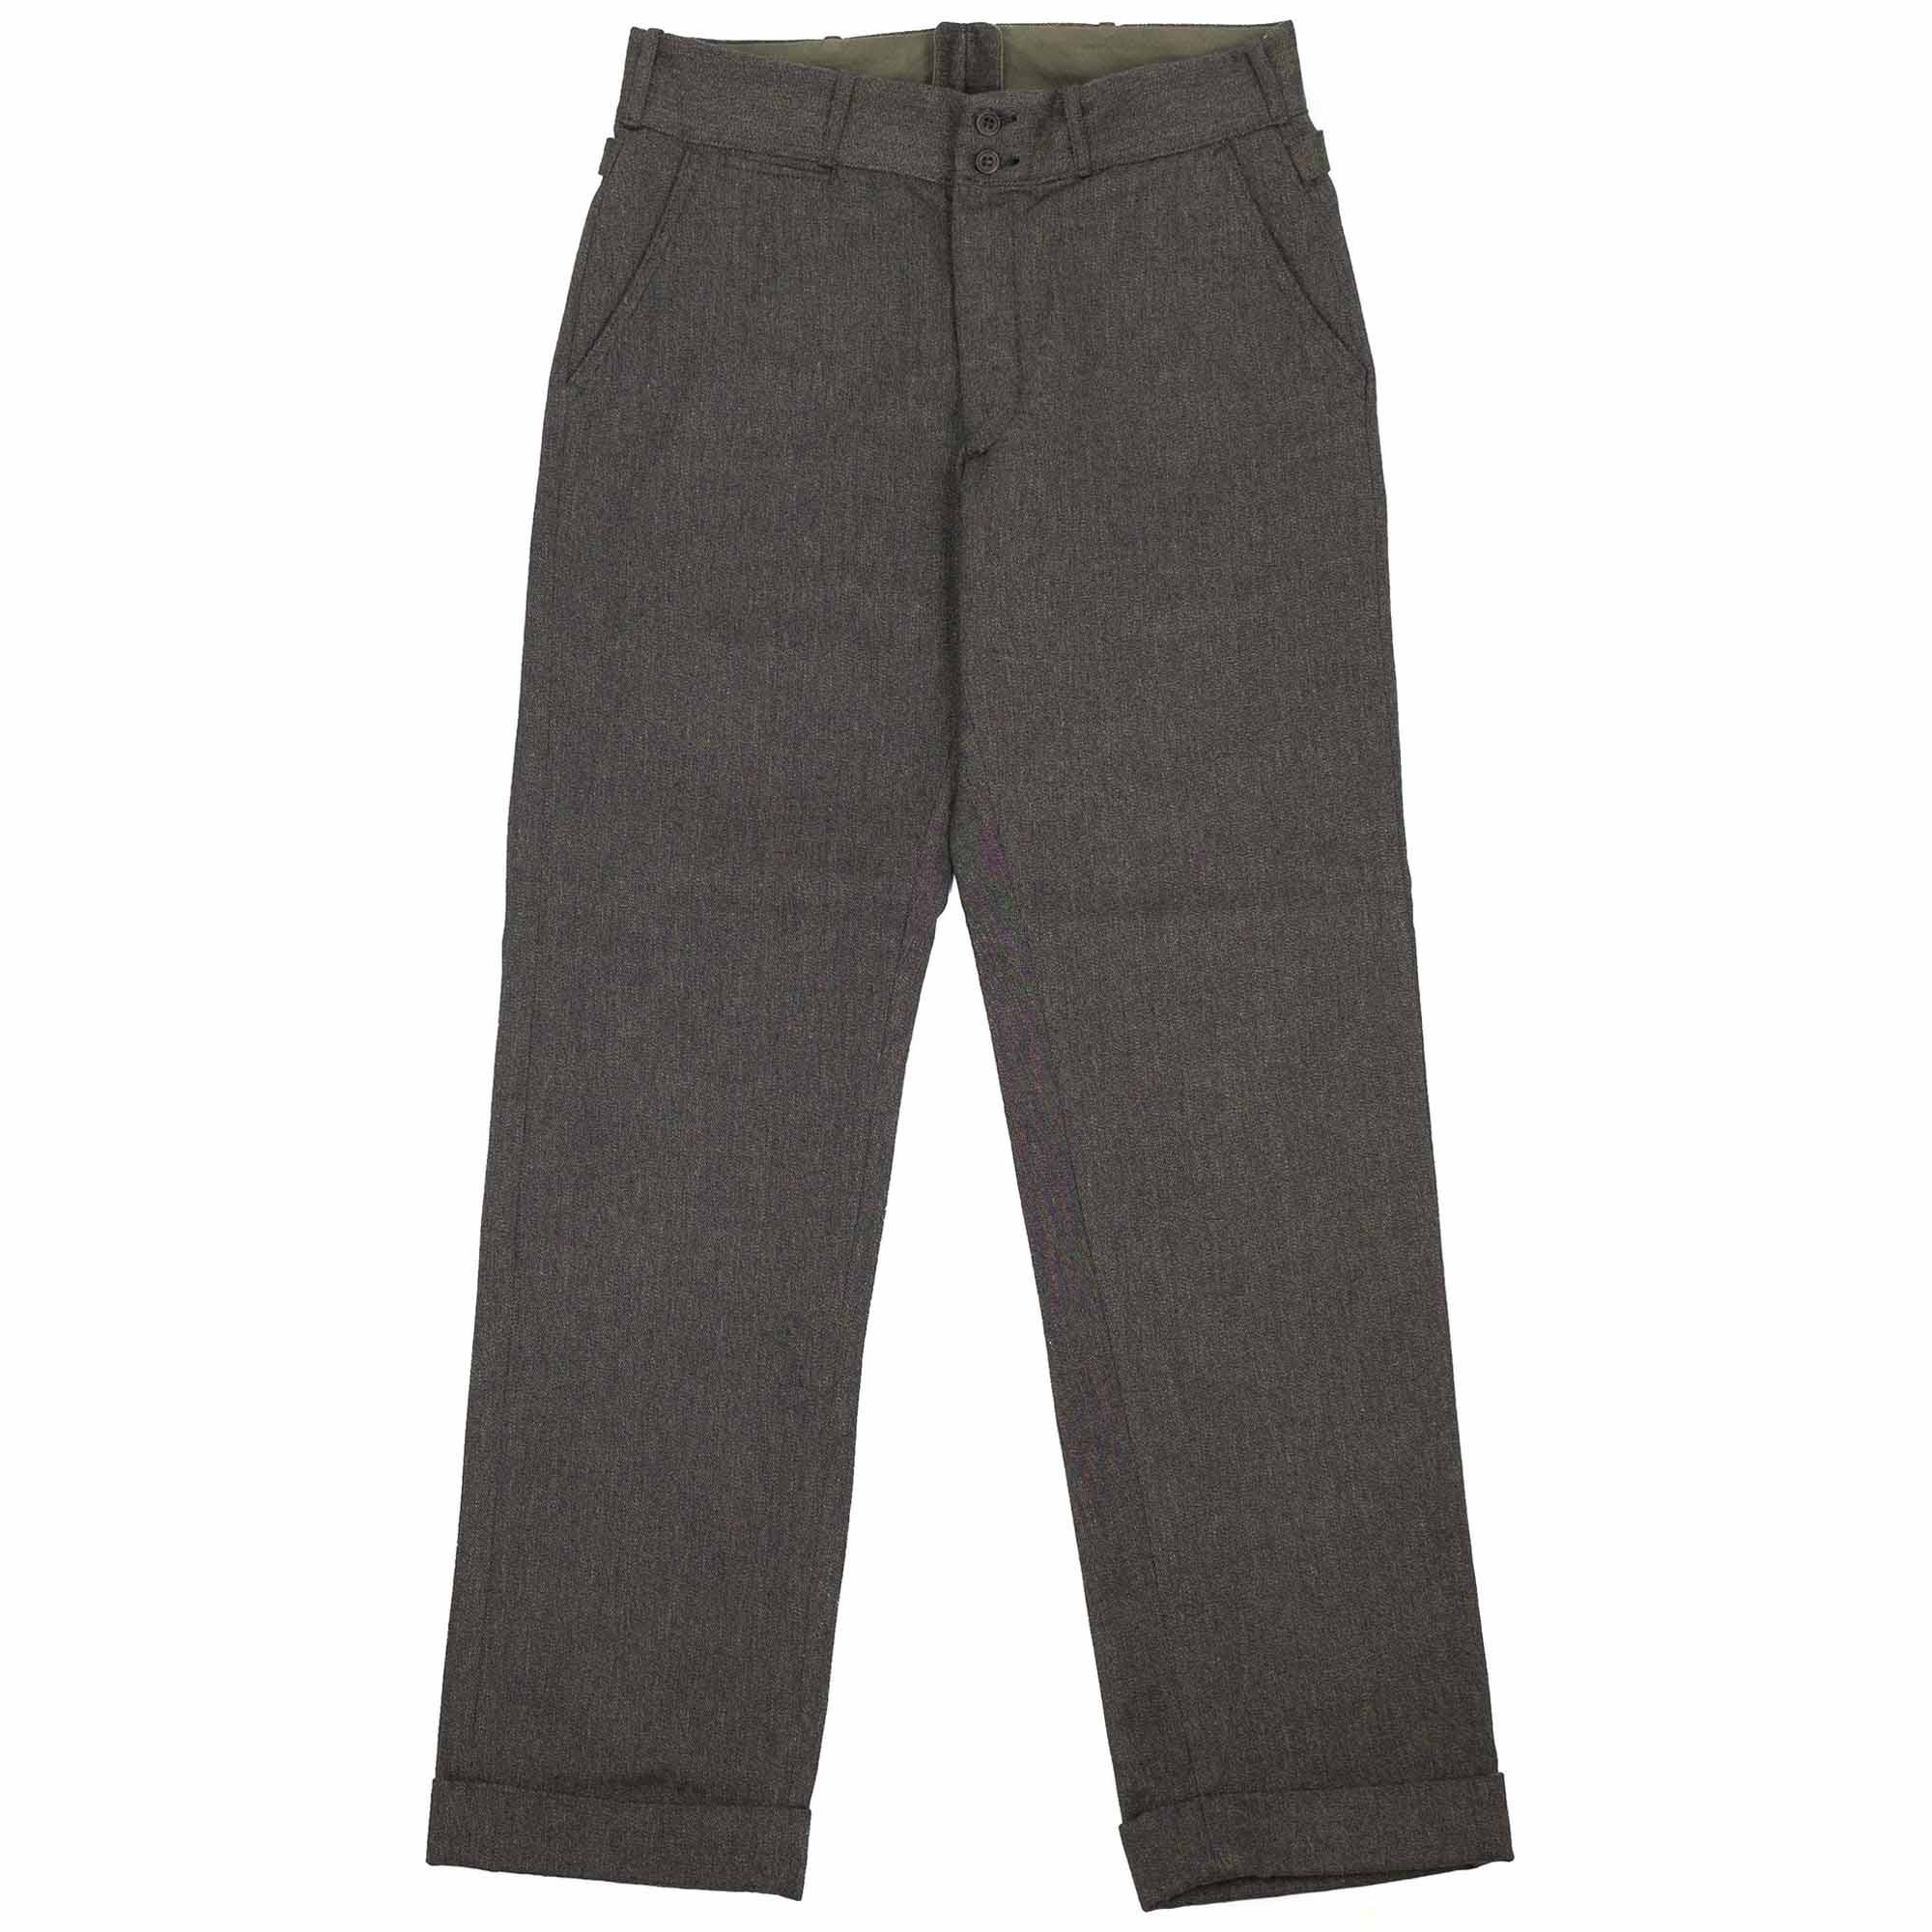 Stevenson Overall Co. Freelander Trousers - Charcoal Heather